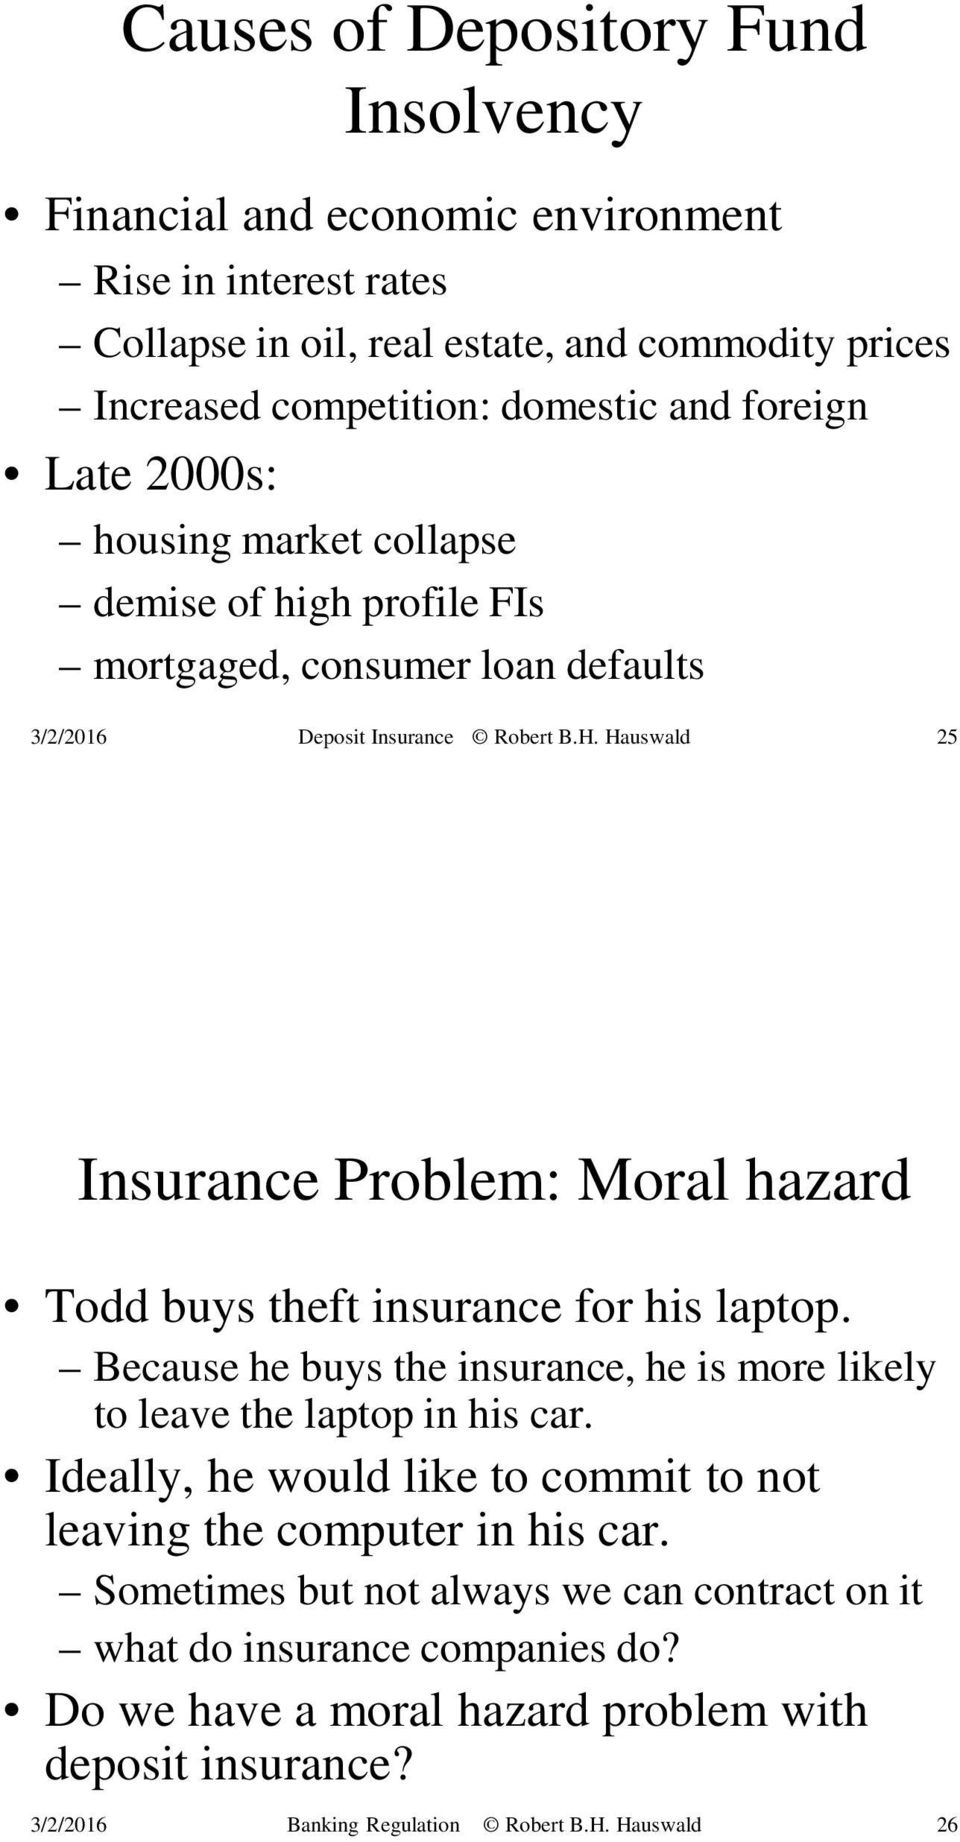 insurance for his laptop. Because he buys the insurance, he is more likely to leave the laptop in his car.